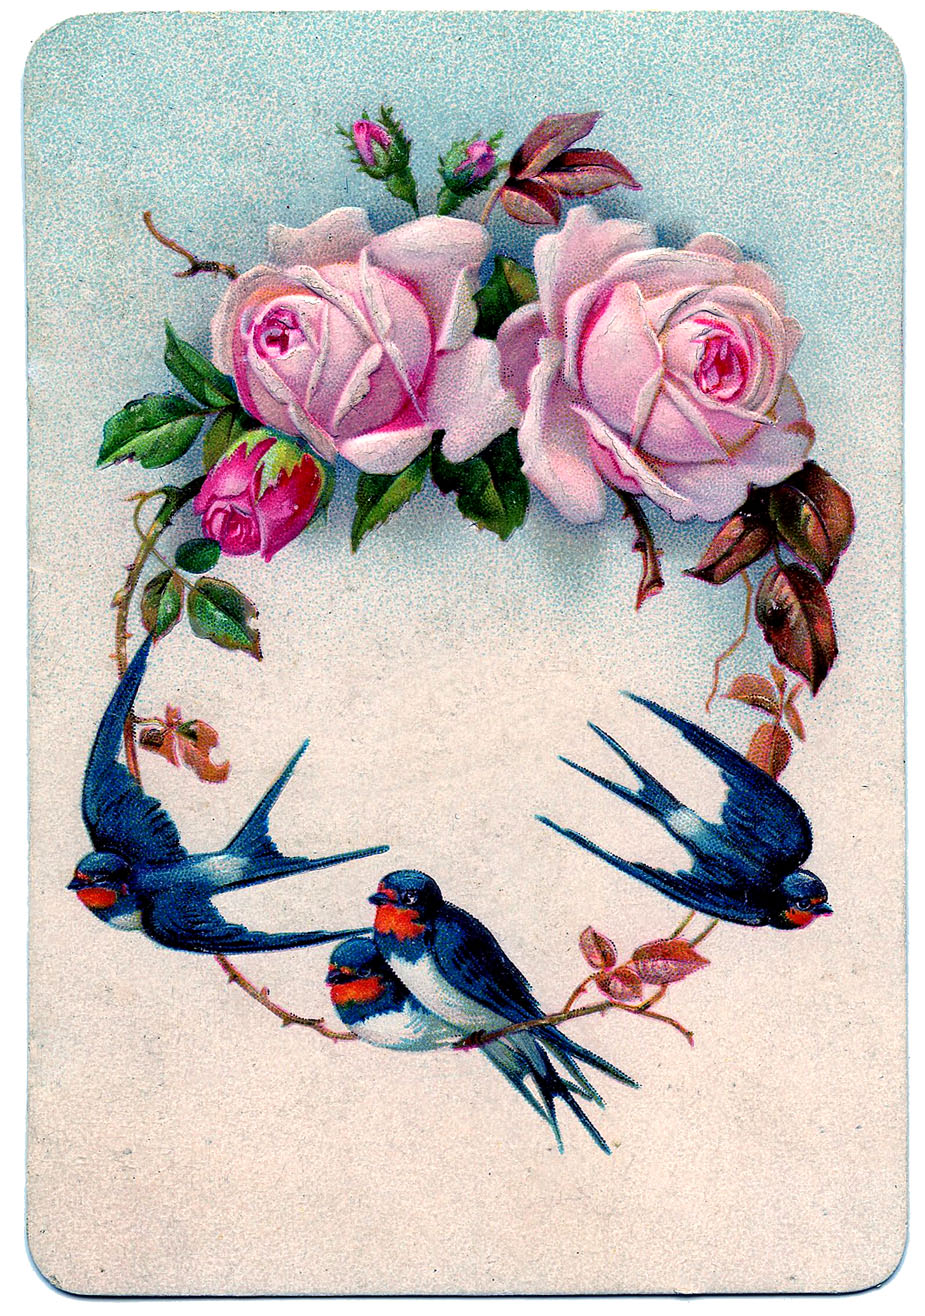 Swallows also symbolized wanting your loved one to return home safely, faithfully, or just simply to come home soon.